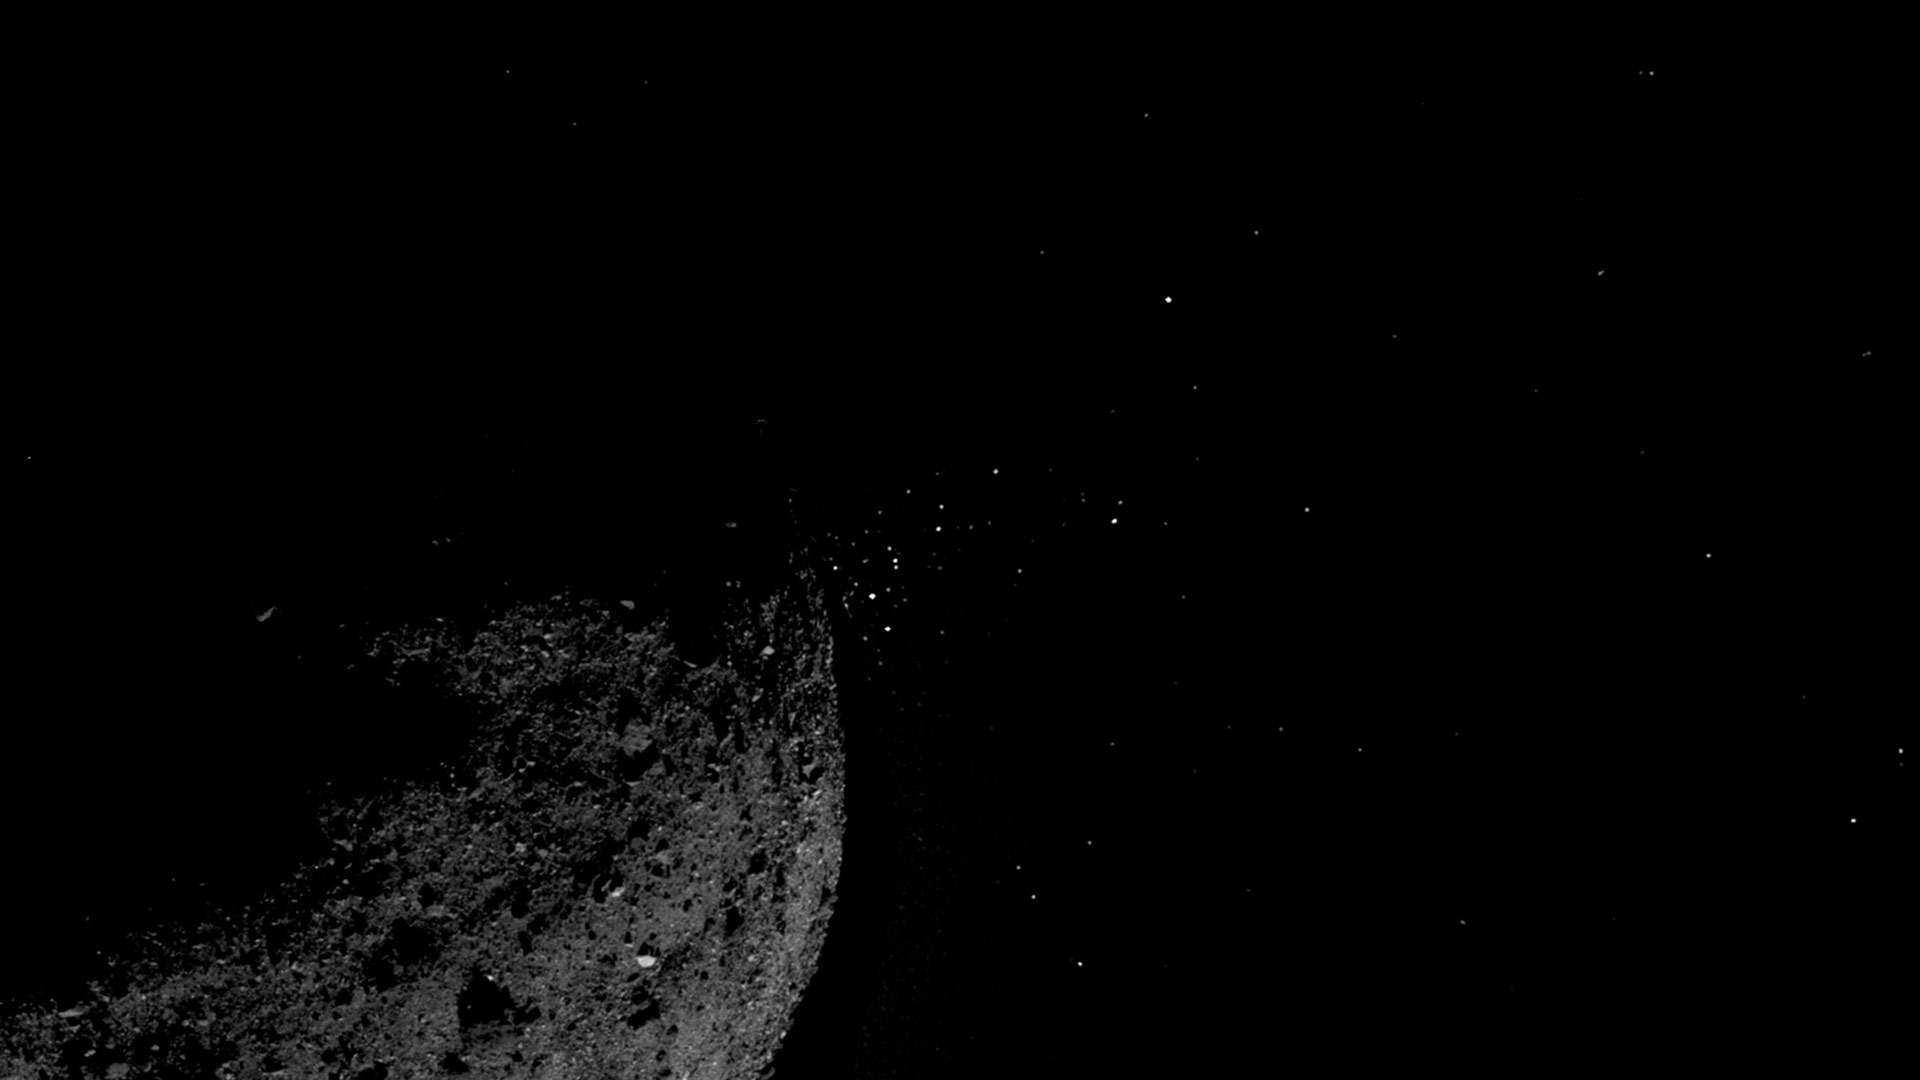 OSIRIS-REx captured pictures of particles around Bennu earlier this year.